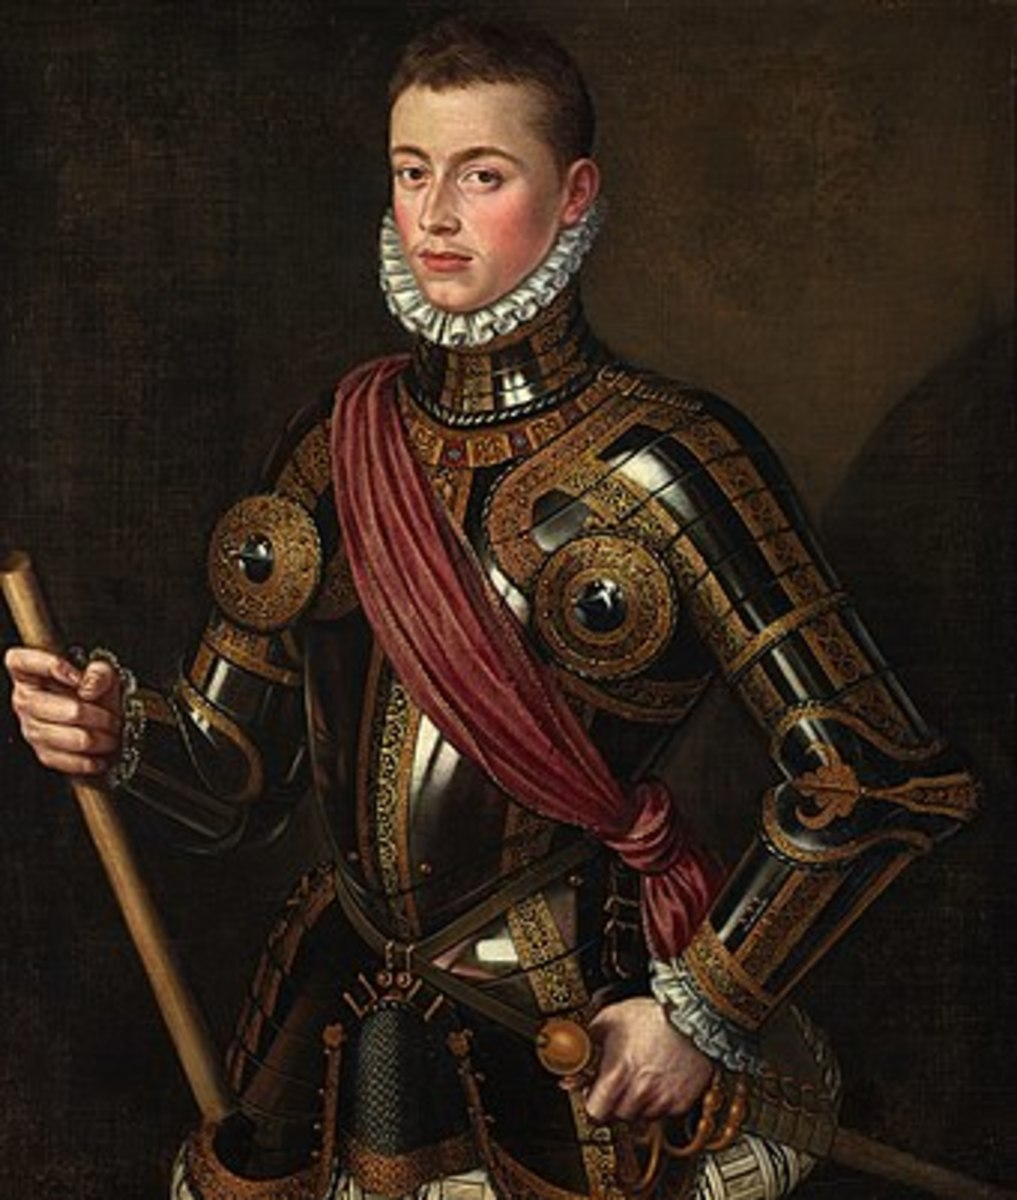 John of Austria, the admiral of the Holy League.